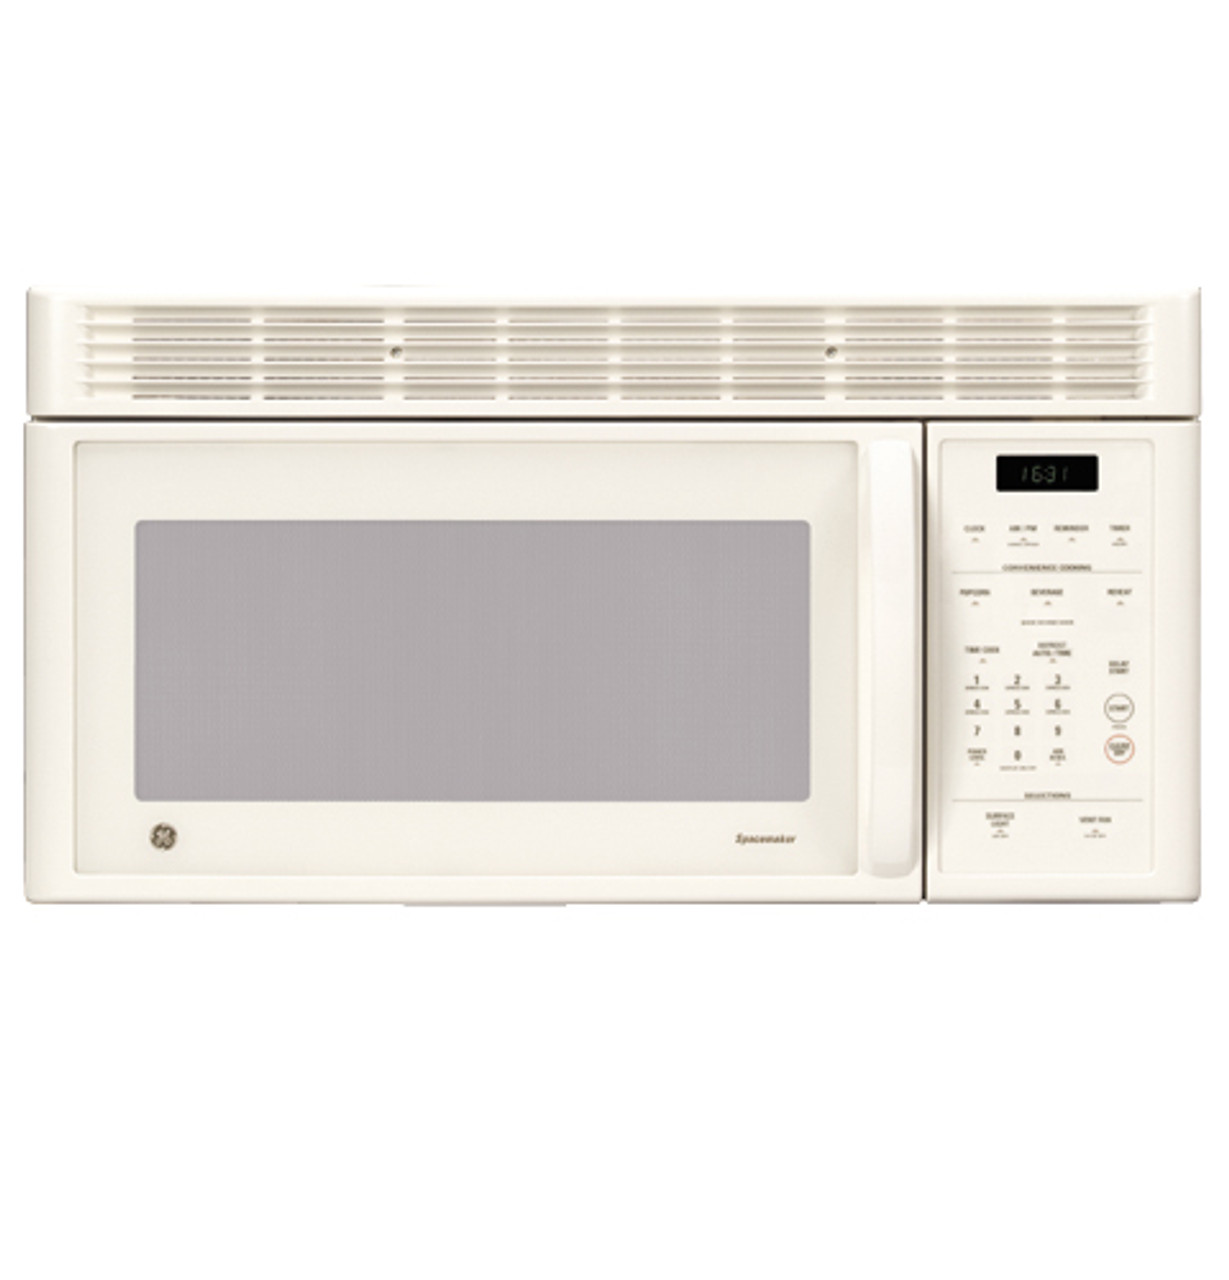 ge spacemaker 1 6 cu ft capacity 1000 watt microwave oven with outside venting jvm1630cd